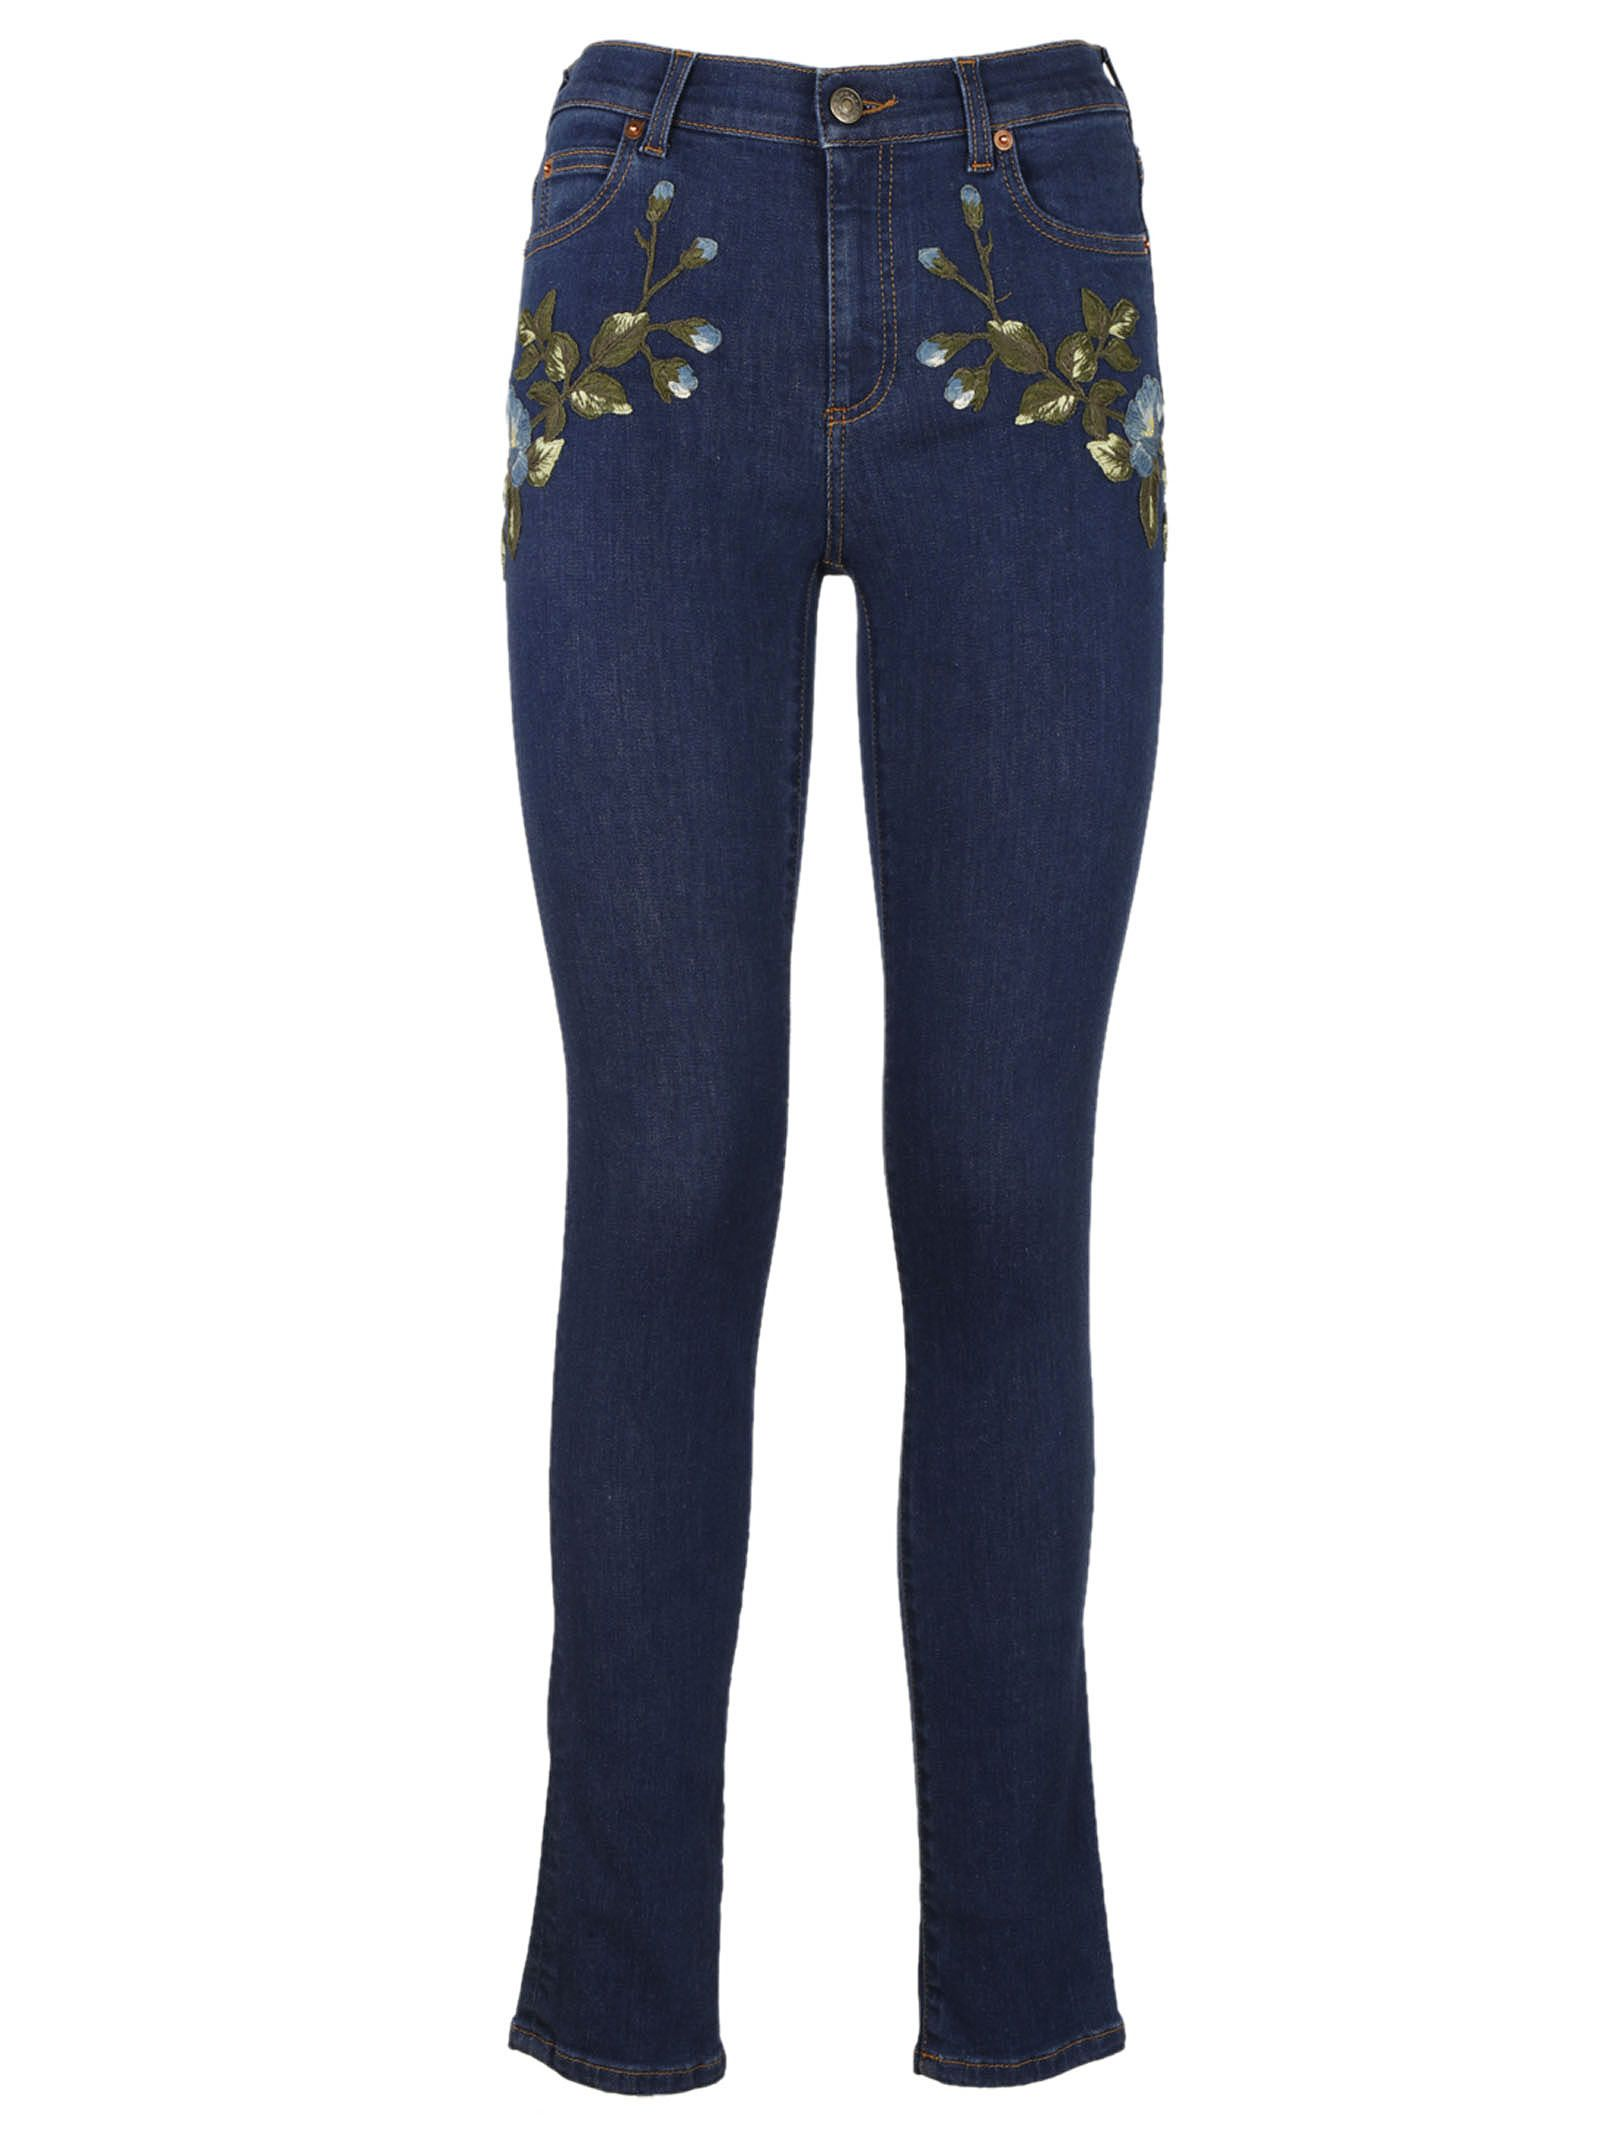 Gucci Floral Embroidered Skinny Jeans